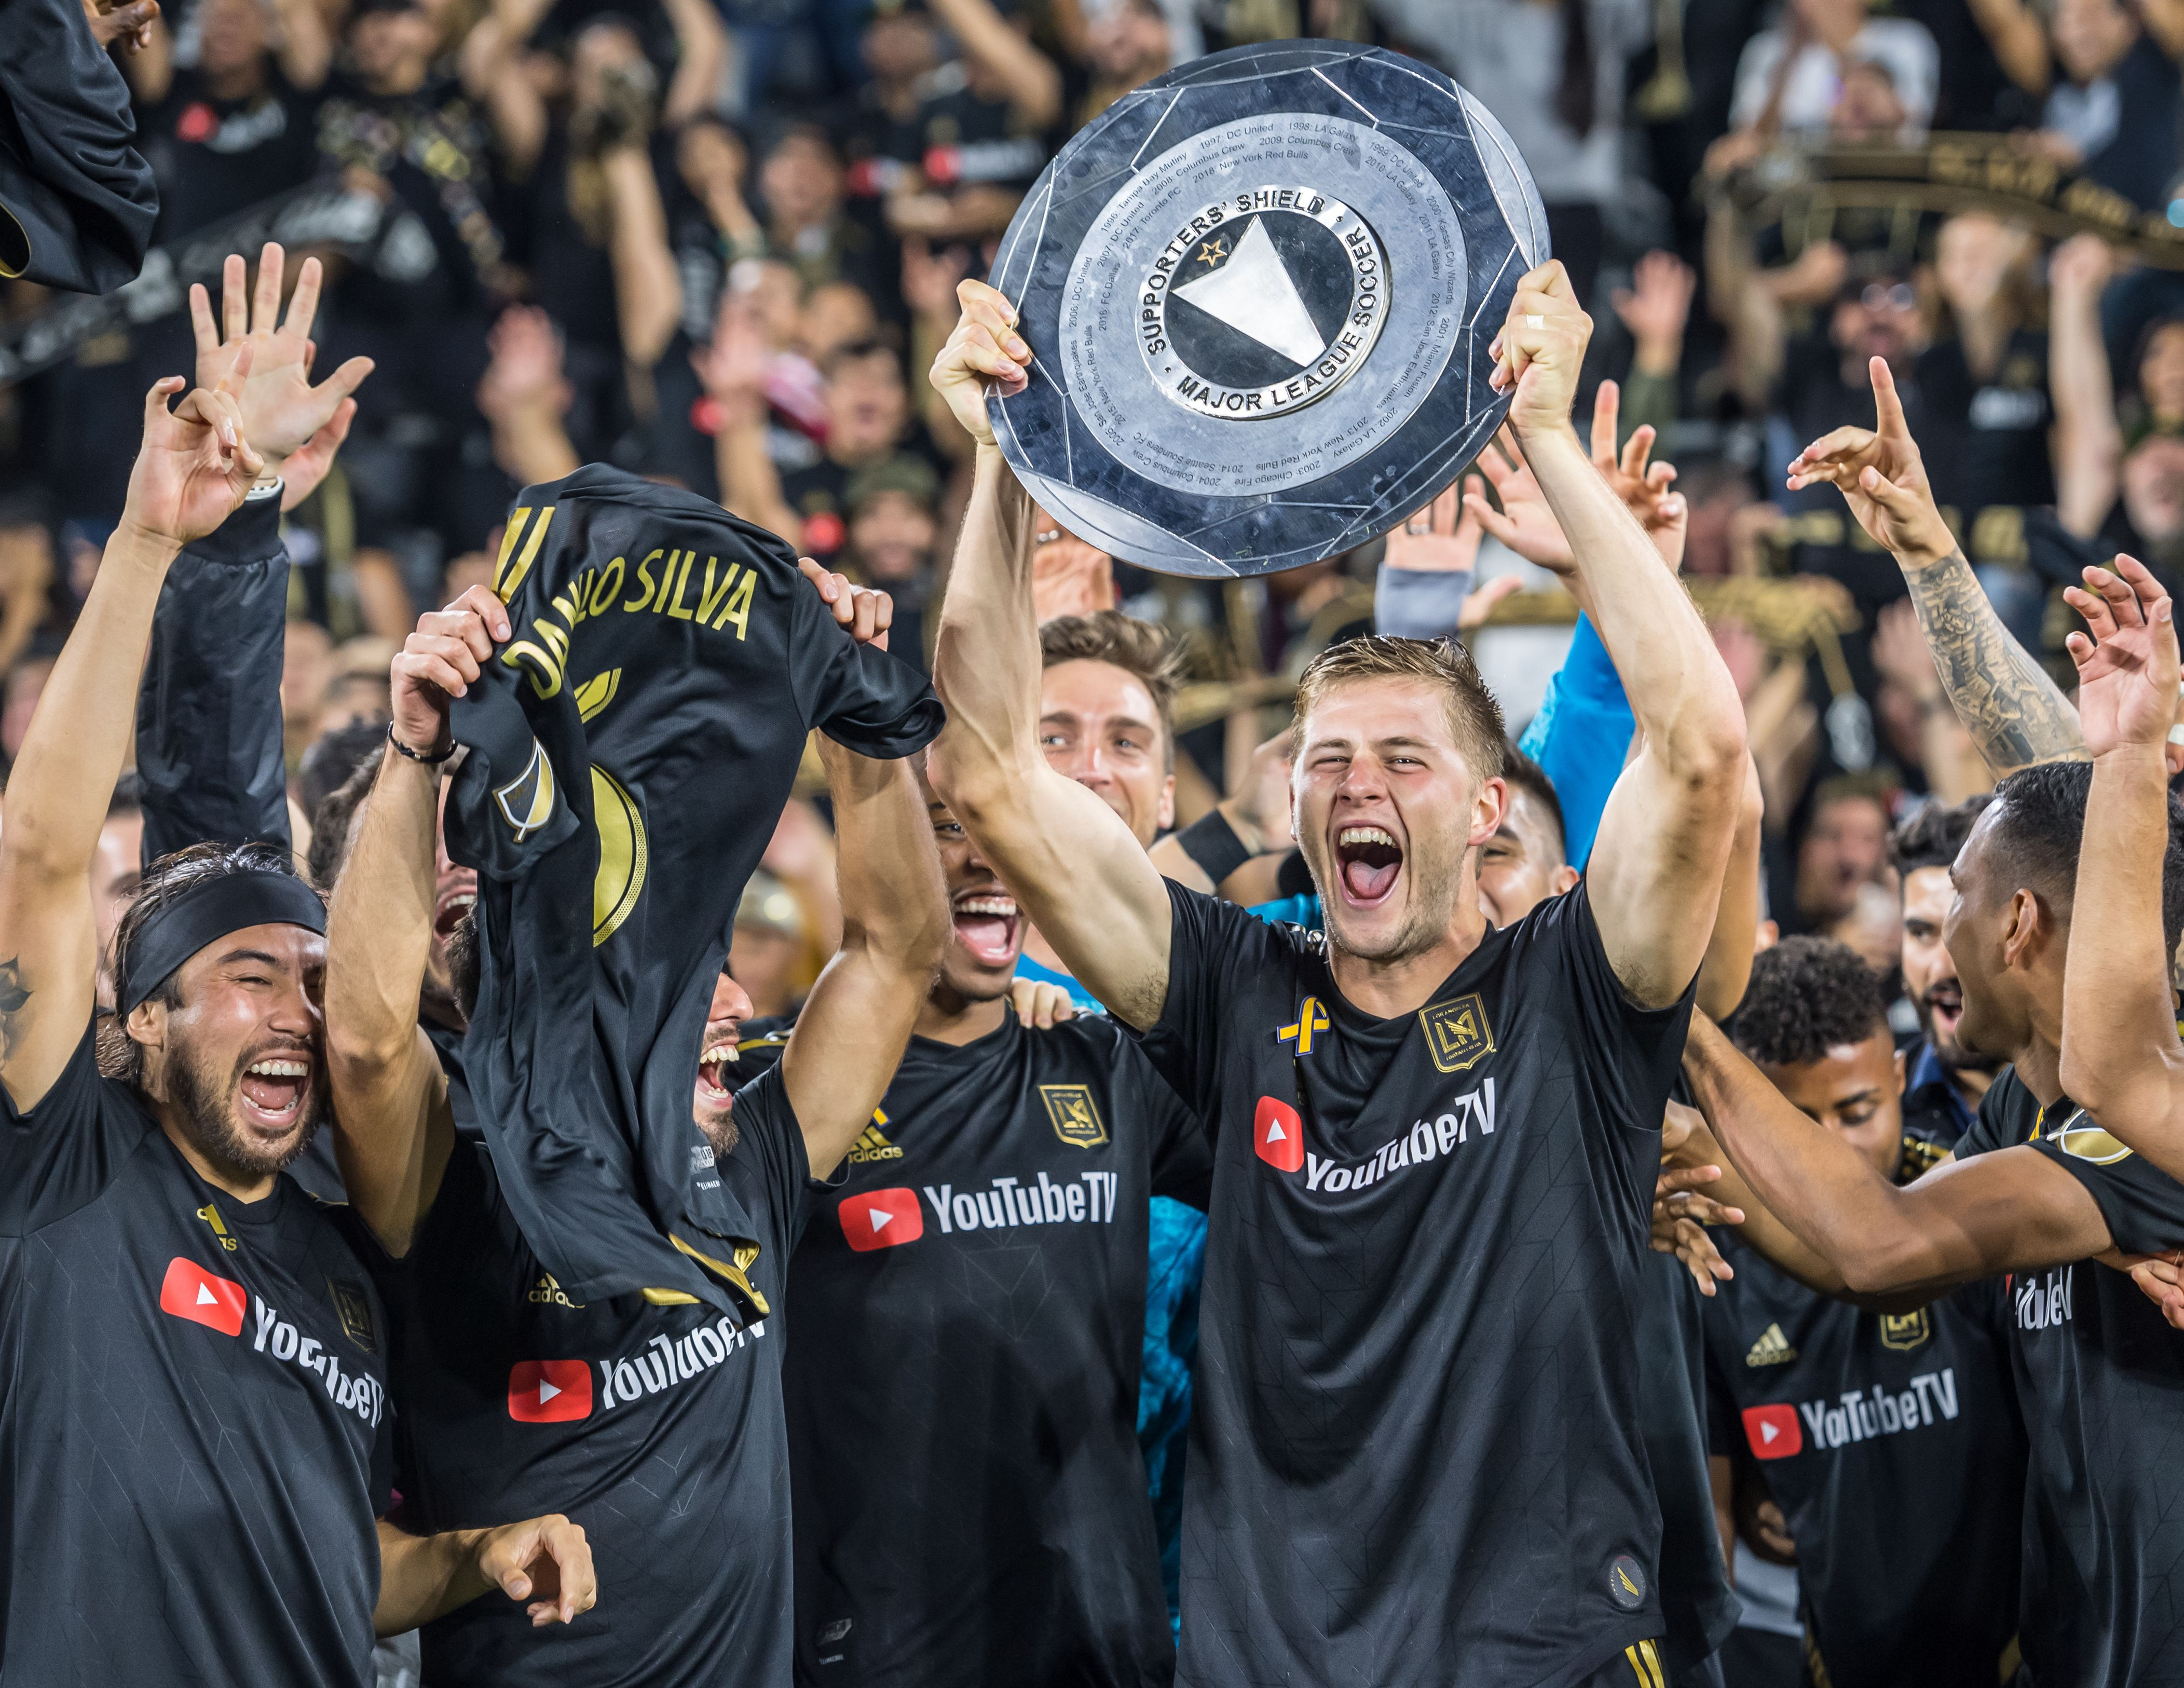 LAFC players holding the Supporters' Shield